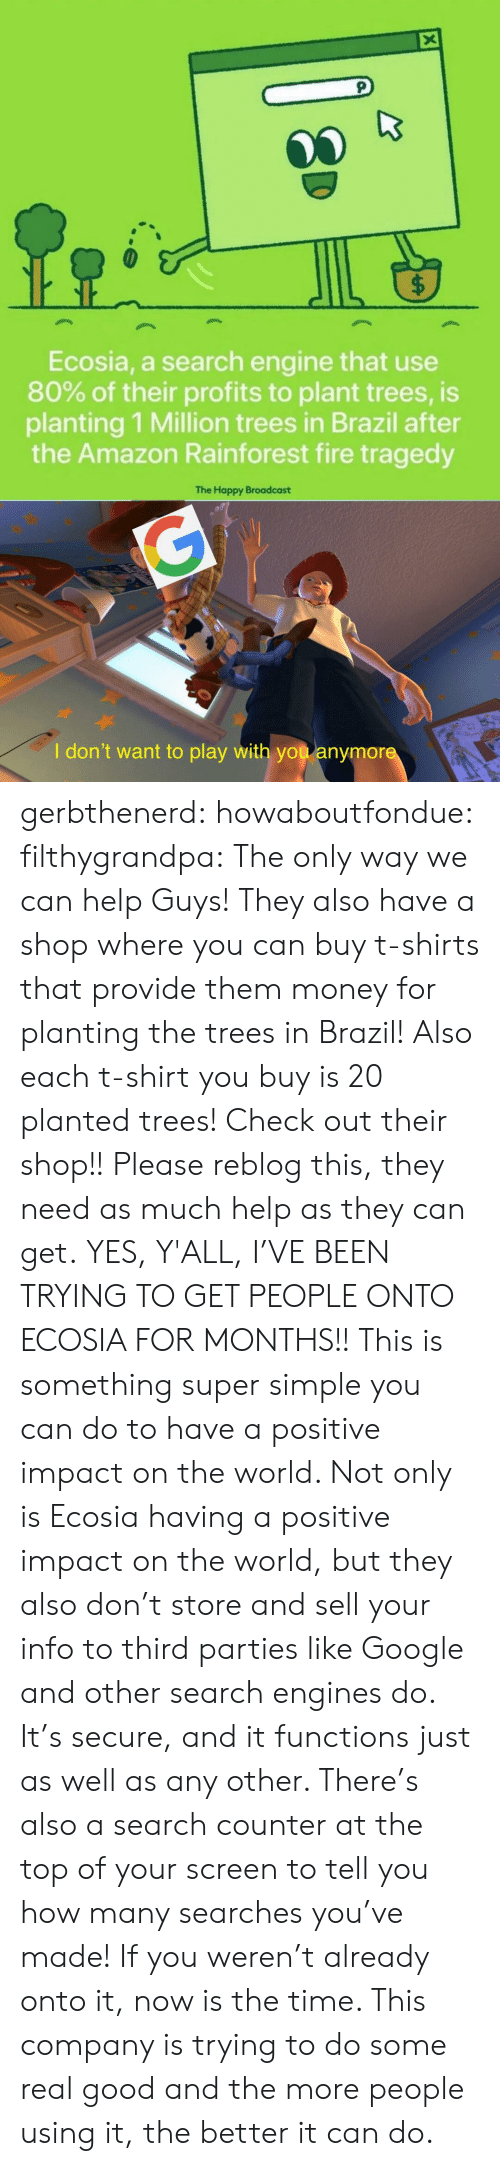 Profits: X  $  Ecosia, a search engine that use  80% of their profits to plant trees, is  planting 1 Million trees in Brazil after  the Amazon Rainforest fire tragedy  The Happy Broadcast  G  I don't want to play with you anymore gerbthenerd:   howaboutfondue:  filthygrandpa:  The only way we can help  Guys! They also have a shop where you can buy t-shirts that provide them money for planting the trees in Brazil! Also each t-shirt you buy is 20 planted trees! Check out their shop!!  Please reblog this, they need as much help as they can get.   YES, Y'ALL, I'VE BEEN TRYING TO GET PEOPLE ONTO ECOSIA FOR MONTHS!!  This is something super simple you can do to have a positive impact on the world. Not only is Ecosia having a positive impact on the world, but they also don't store and sell your info to third parties like Google and other search engines do. It's secure, and it functions just as well as any other. There's also a search counter at the top of your screen to tell you how many searches you've made!   If you weren't already onto it, now is the time. This company is trying to do some real good and the more people using it, the better it can do.